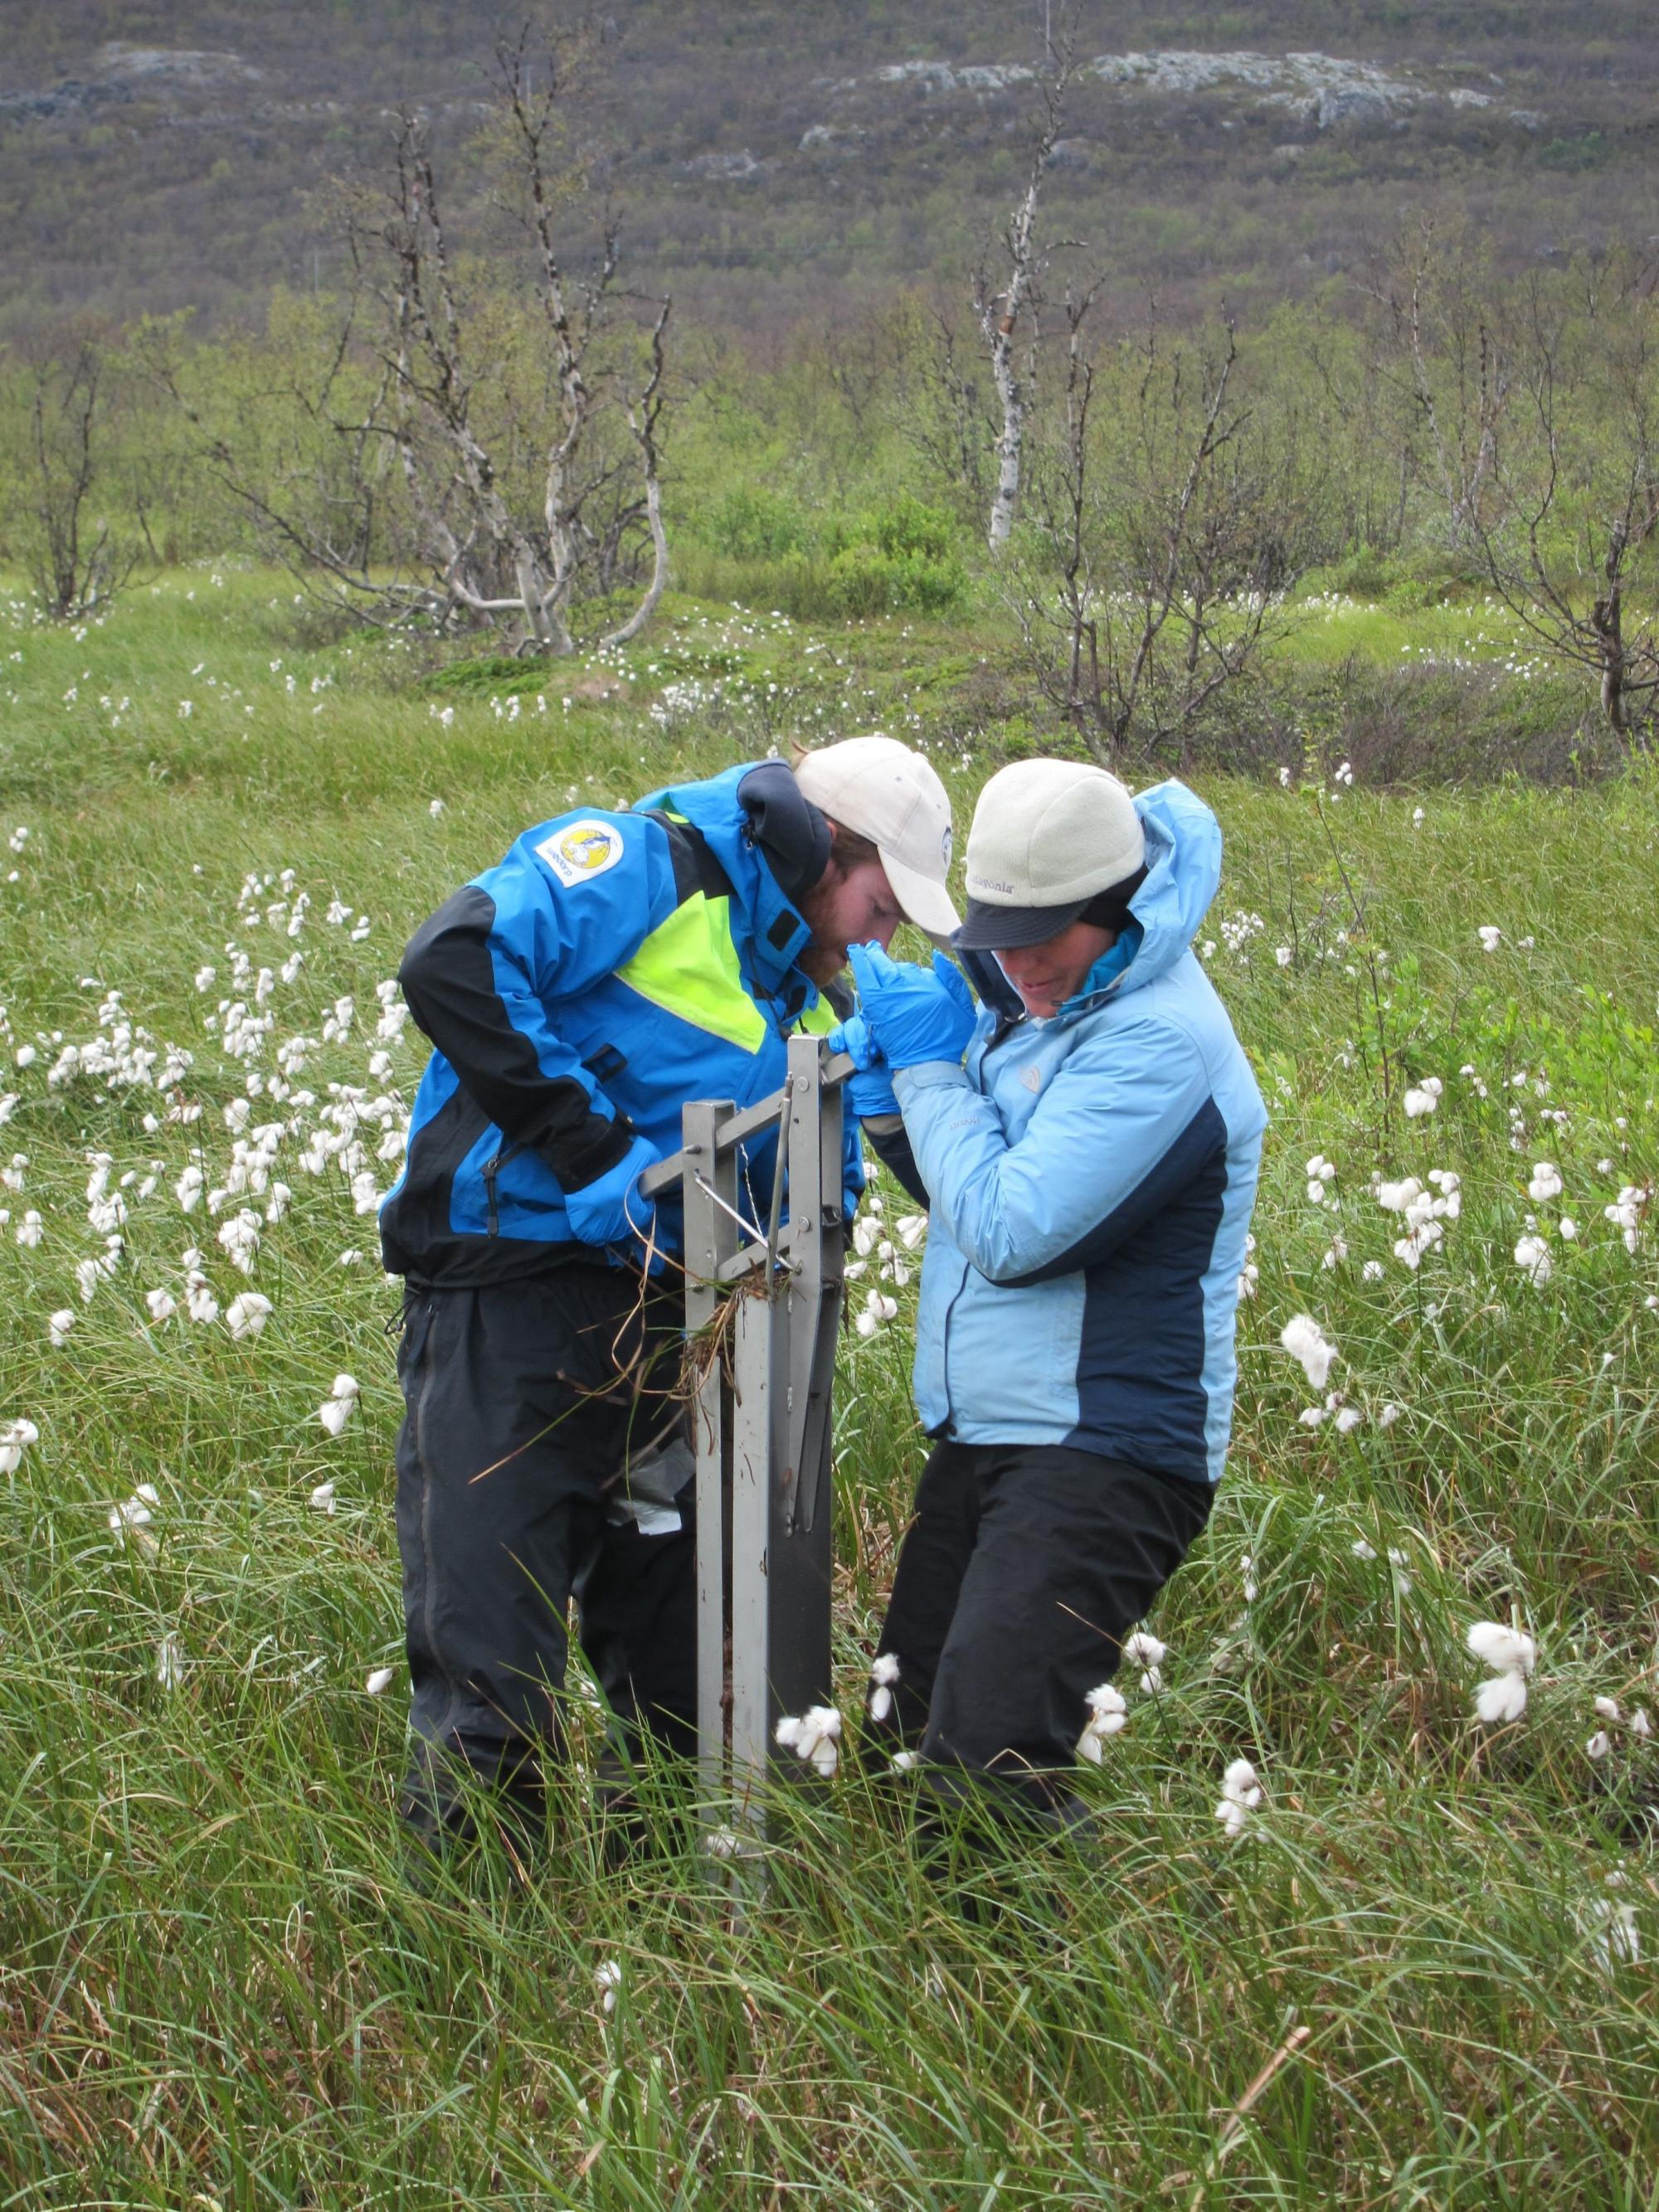 To study microbes in the soil, study lead author Carmody McCalley  and Tyler Logan of the Swedish Polar Research Secretariat drive cores into the ground ...